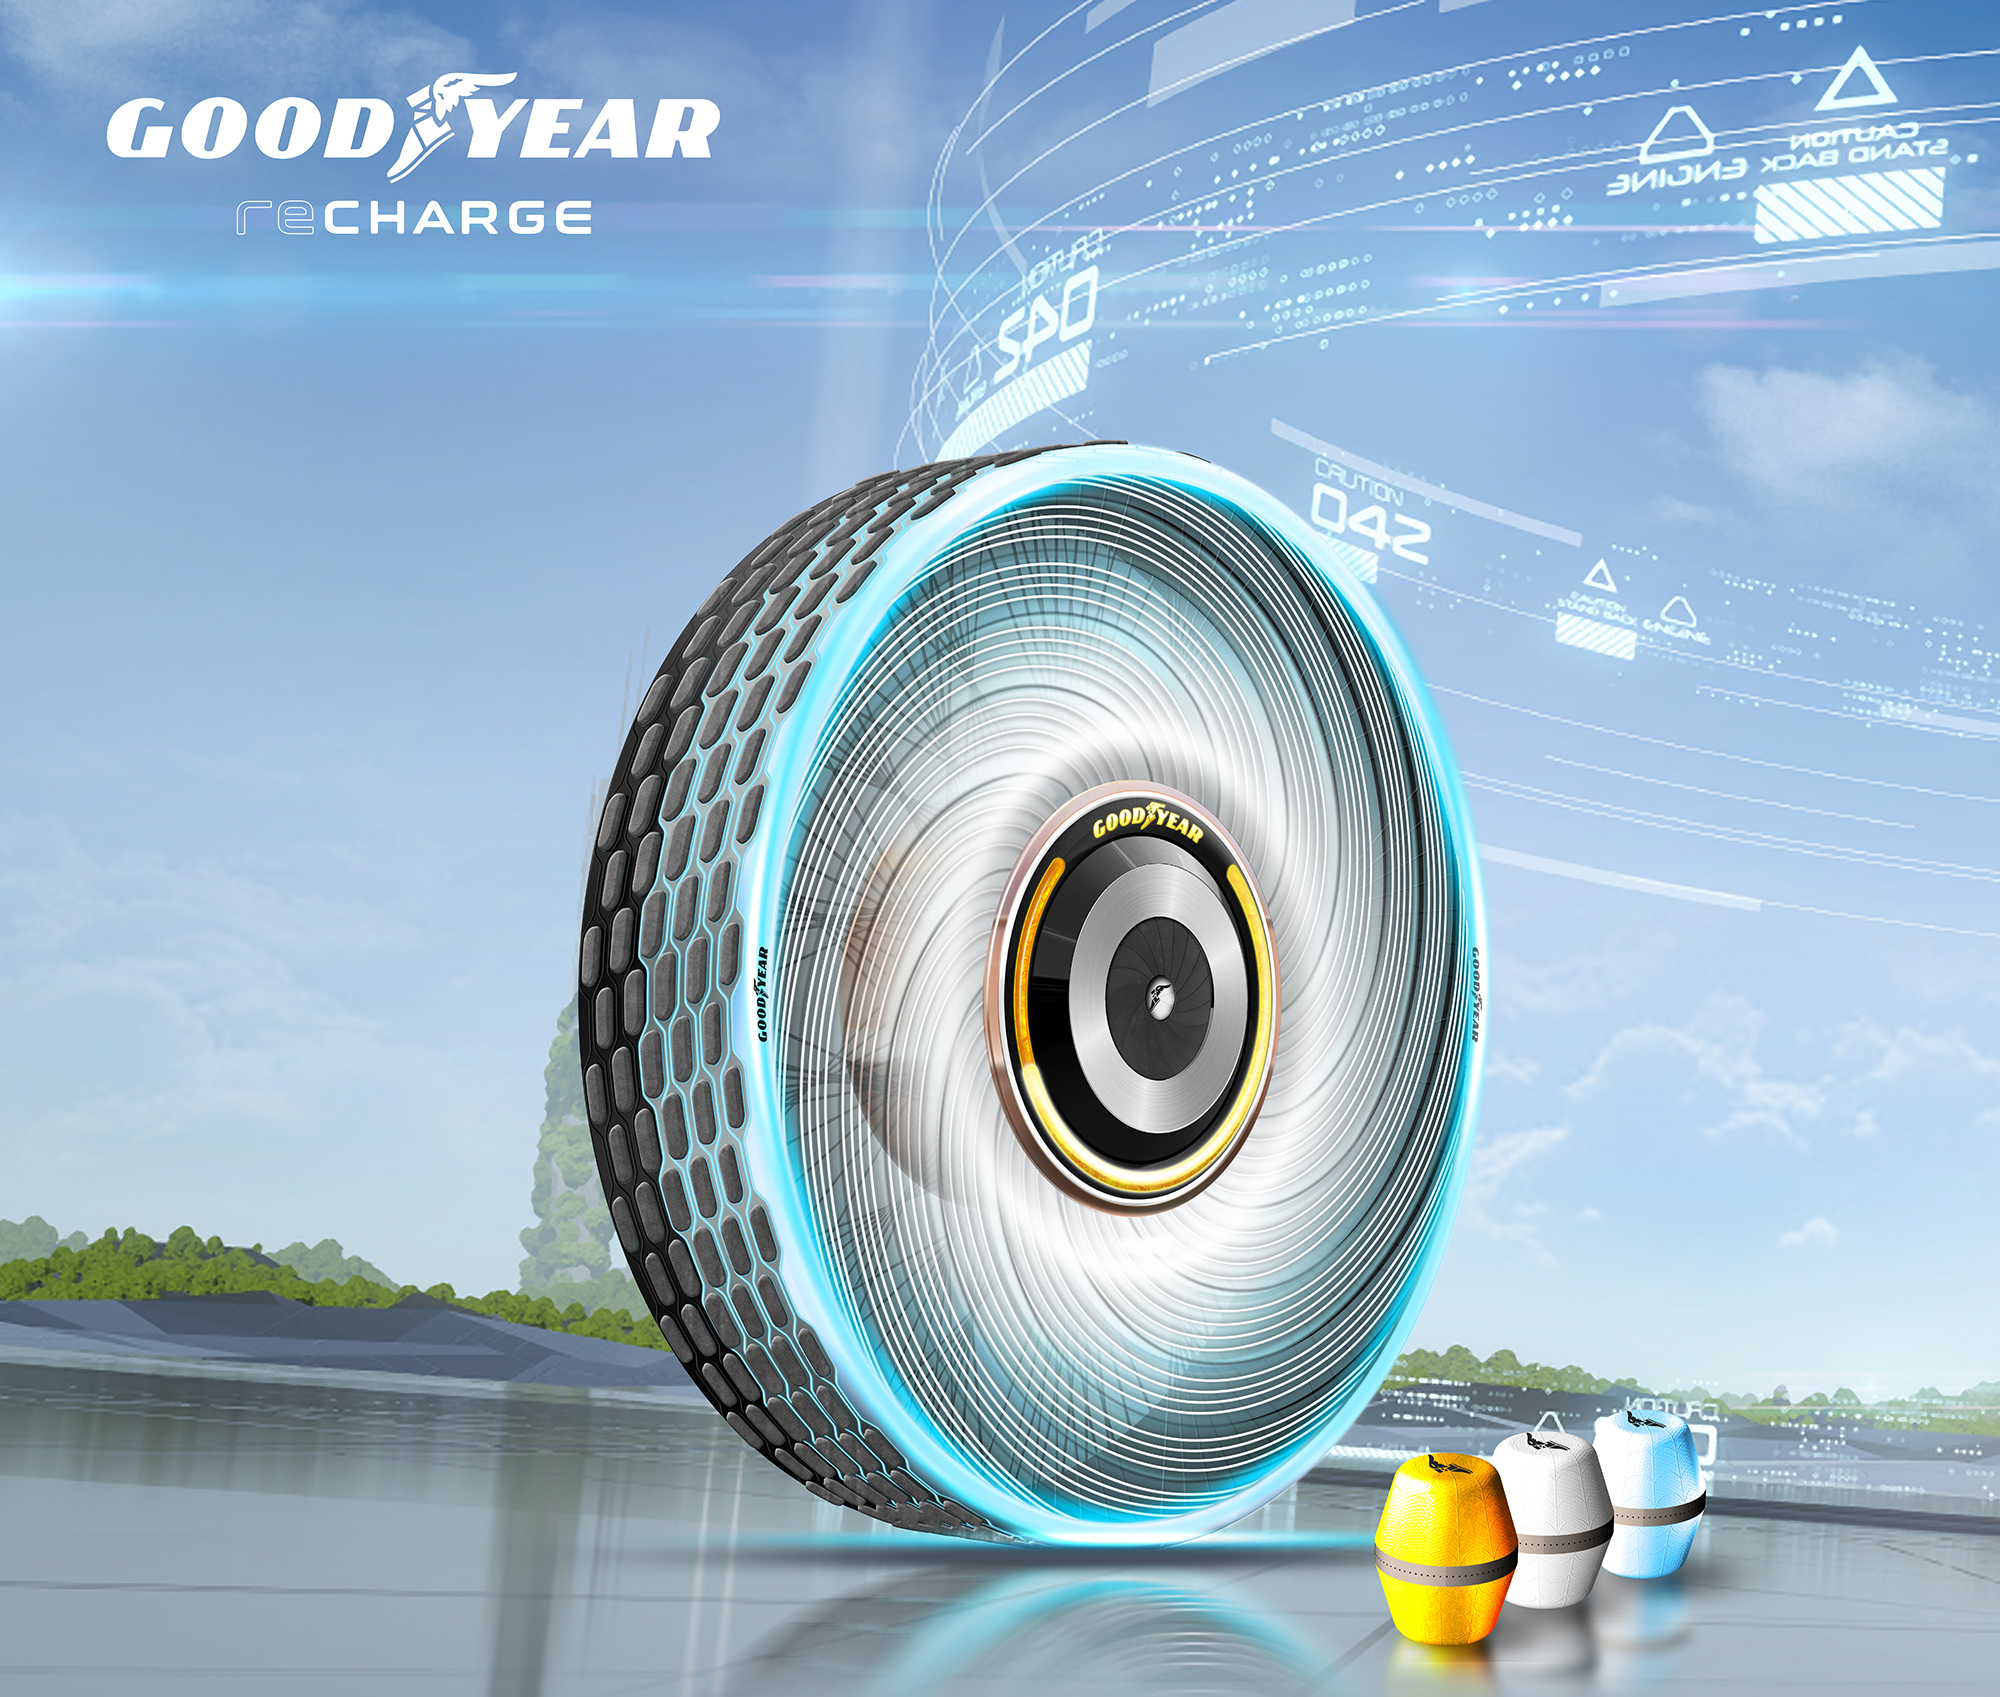 goodyear-recharge-threequarter